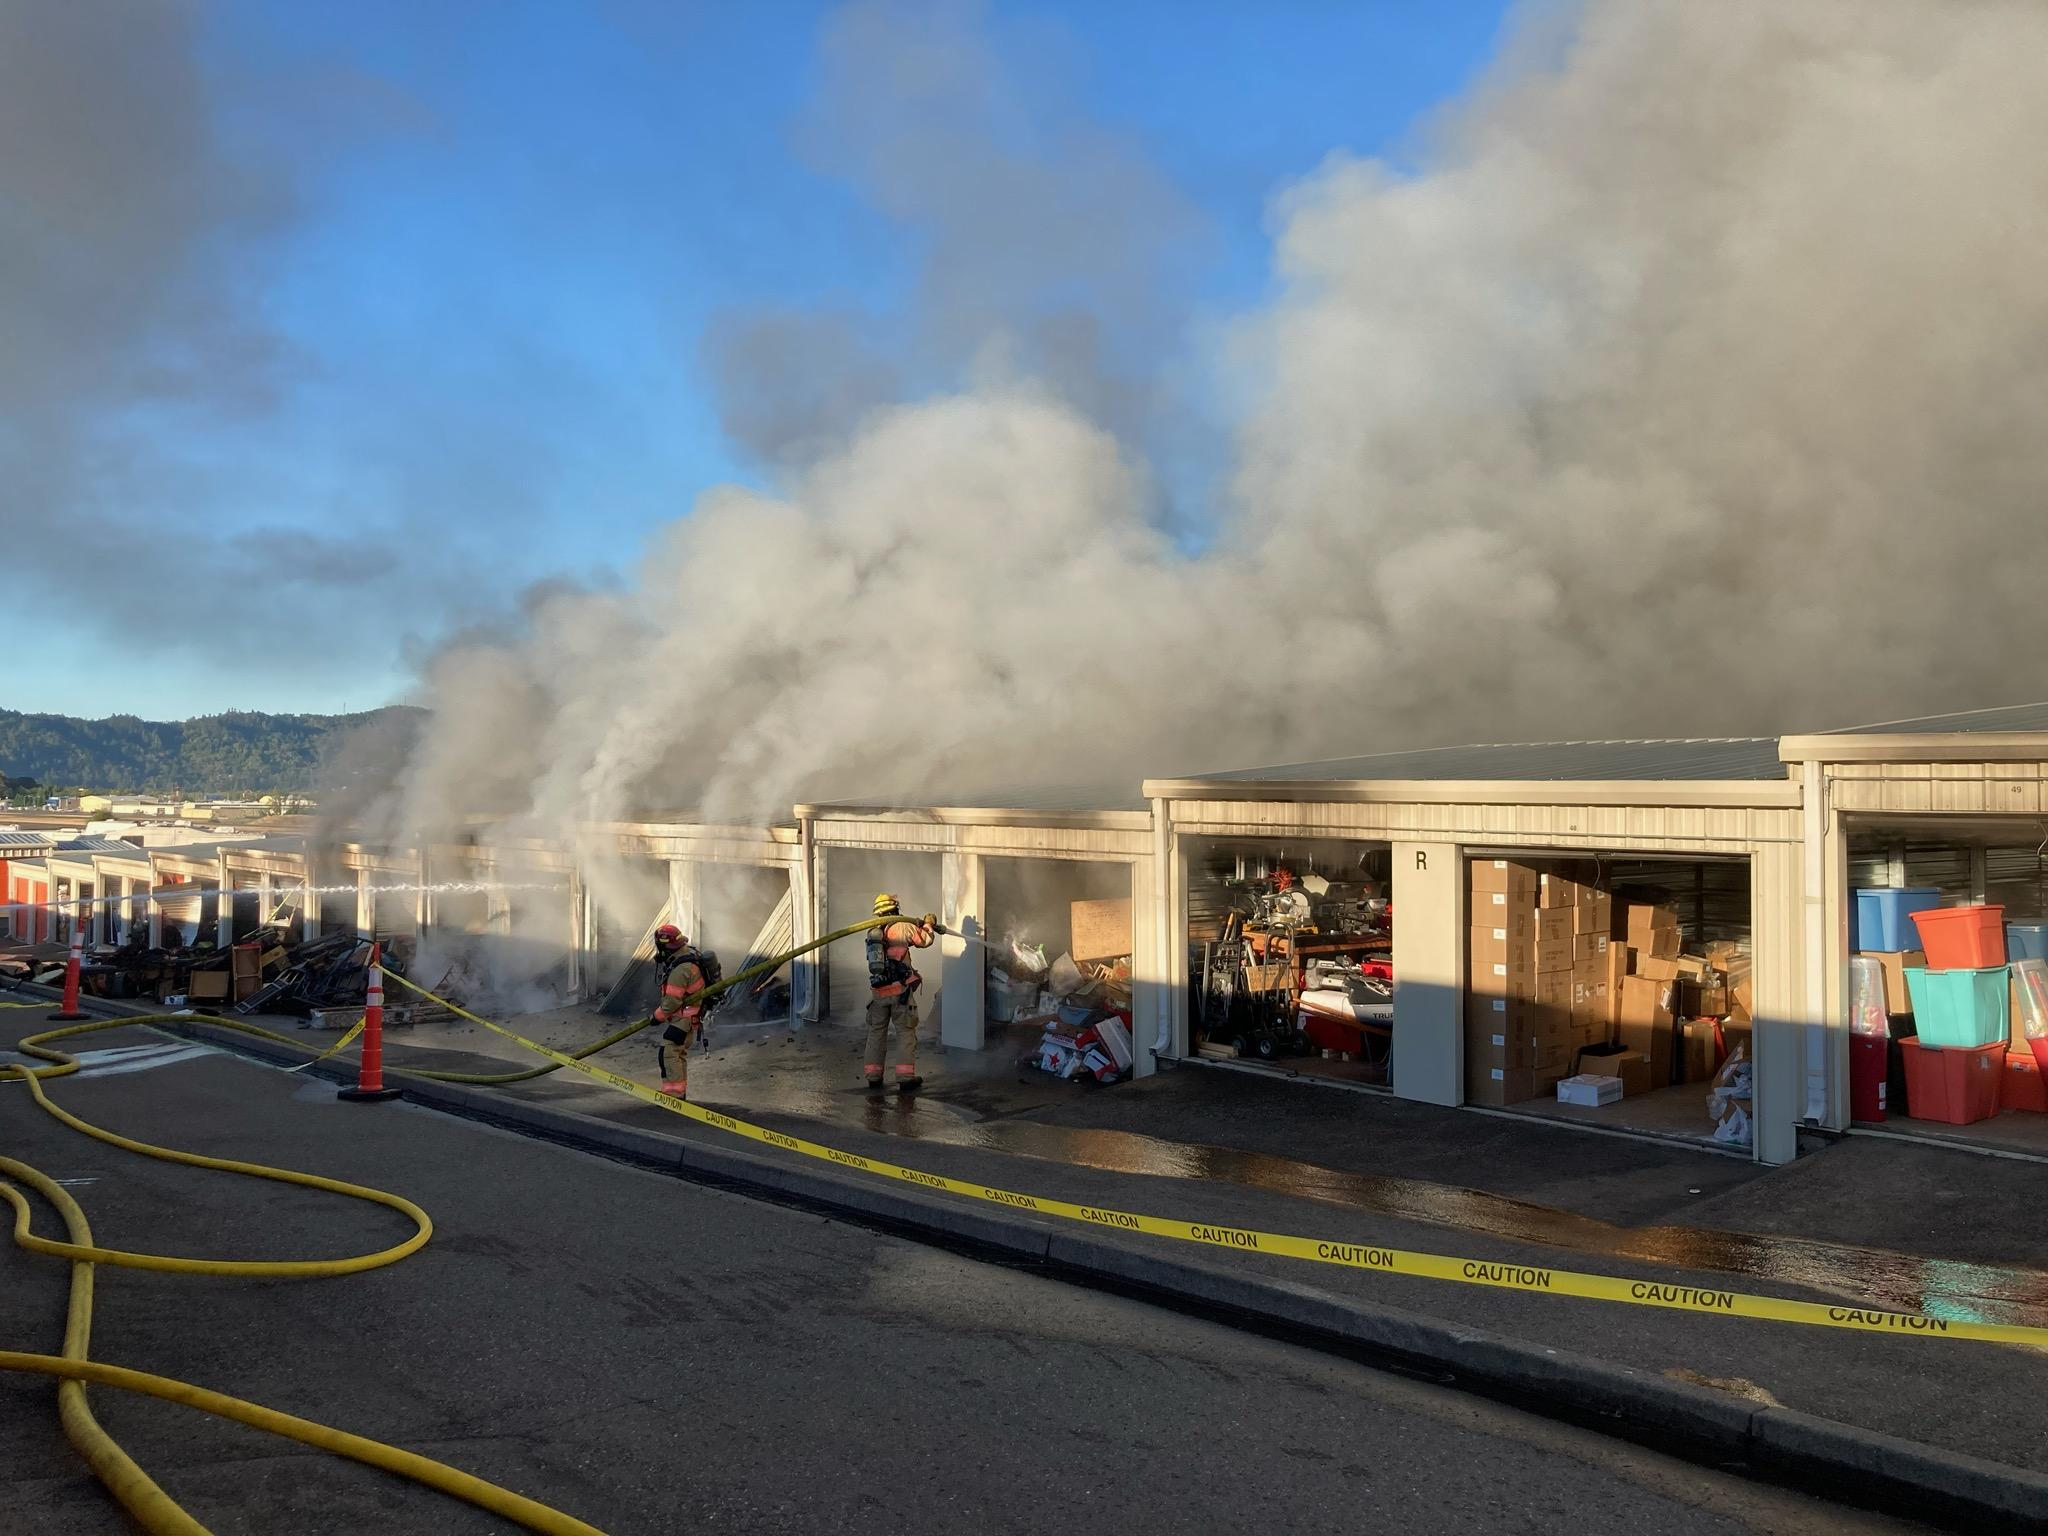 Commercial Structure Fire - Tom Thumb Mini Storage - 3221 NW Edenbower Boulevard - 8/9/20 (Photo) featured image